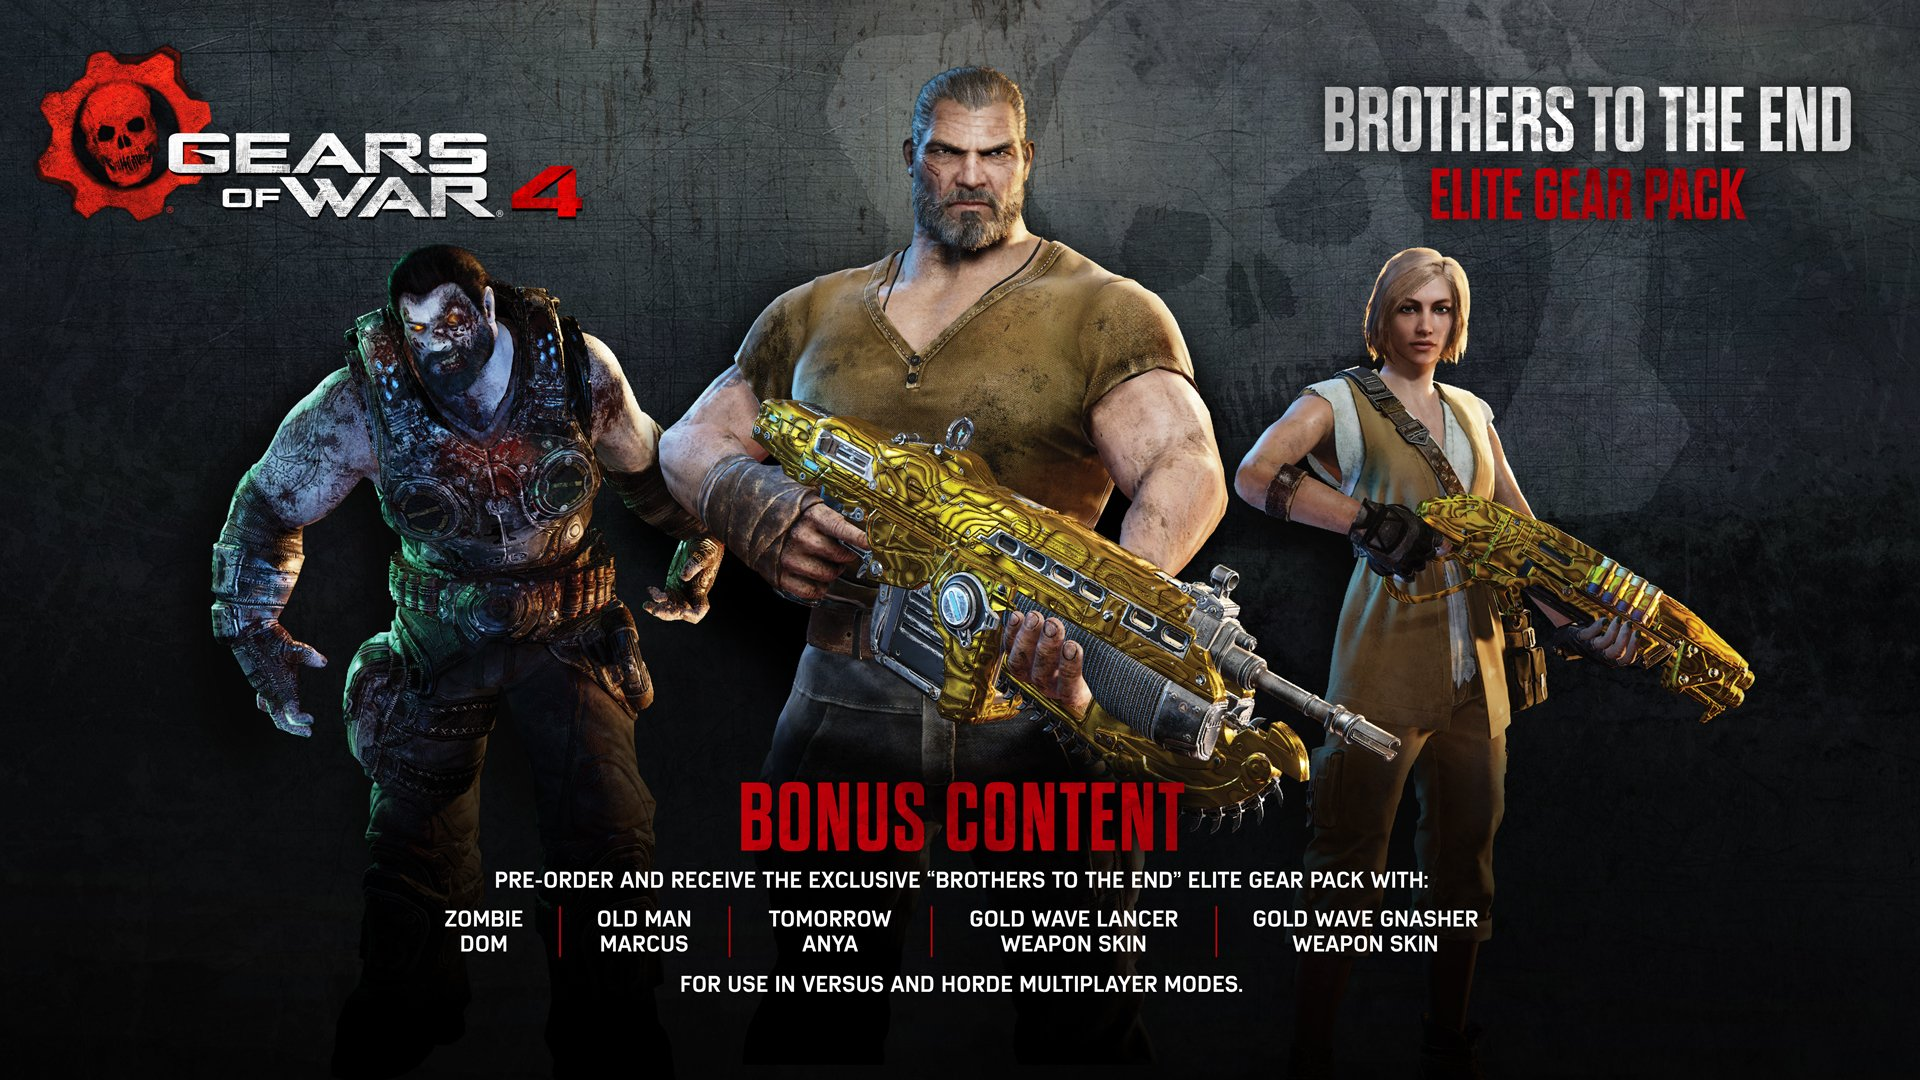 Gears of War 4 Brothers to the End Elite Gear Pack